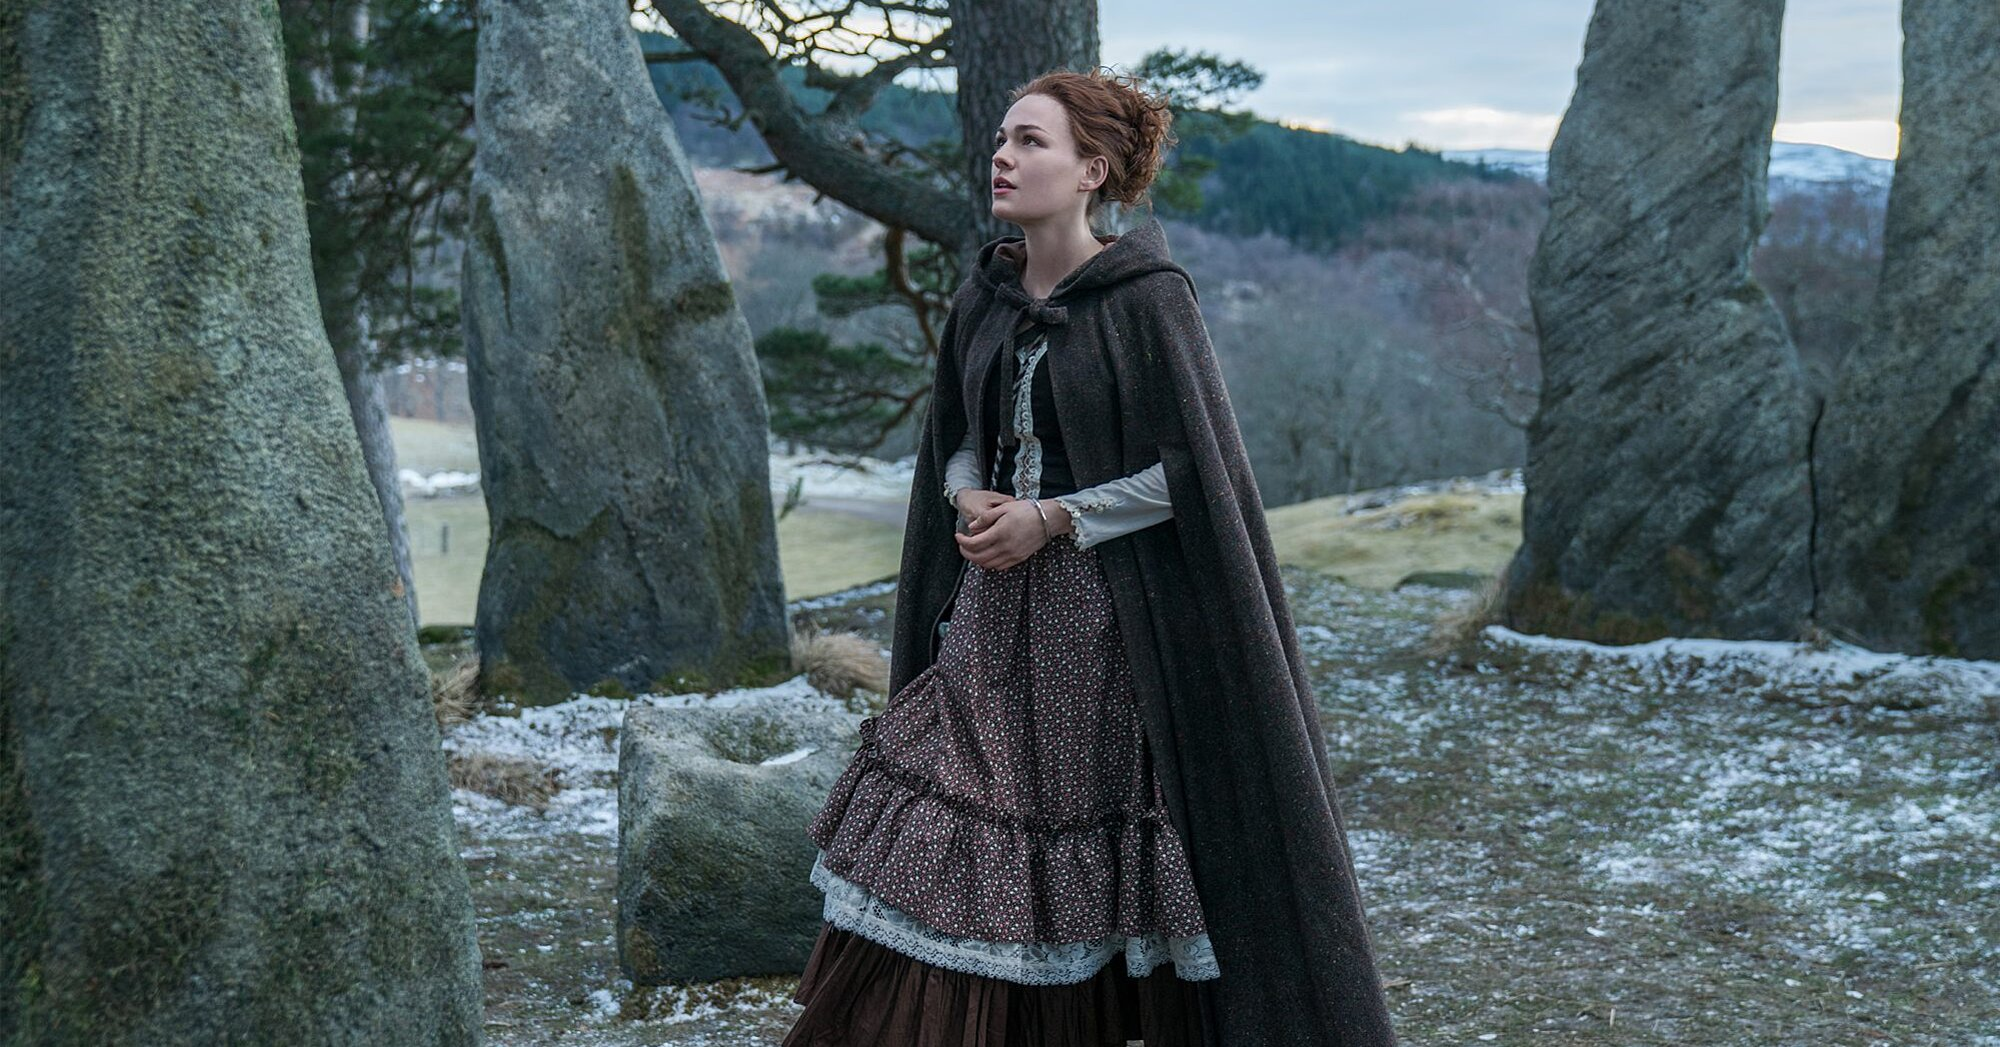 Why 'Outlander' issued a warning before Sunday's episode